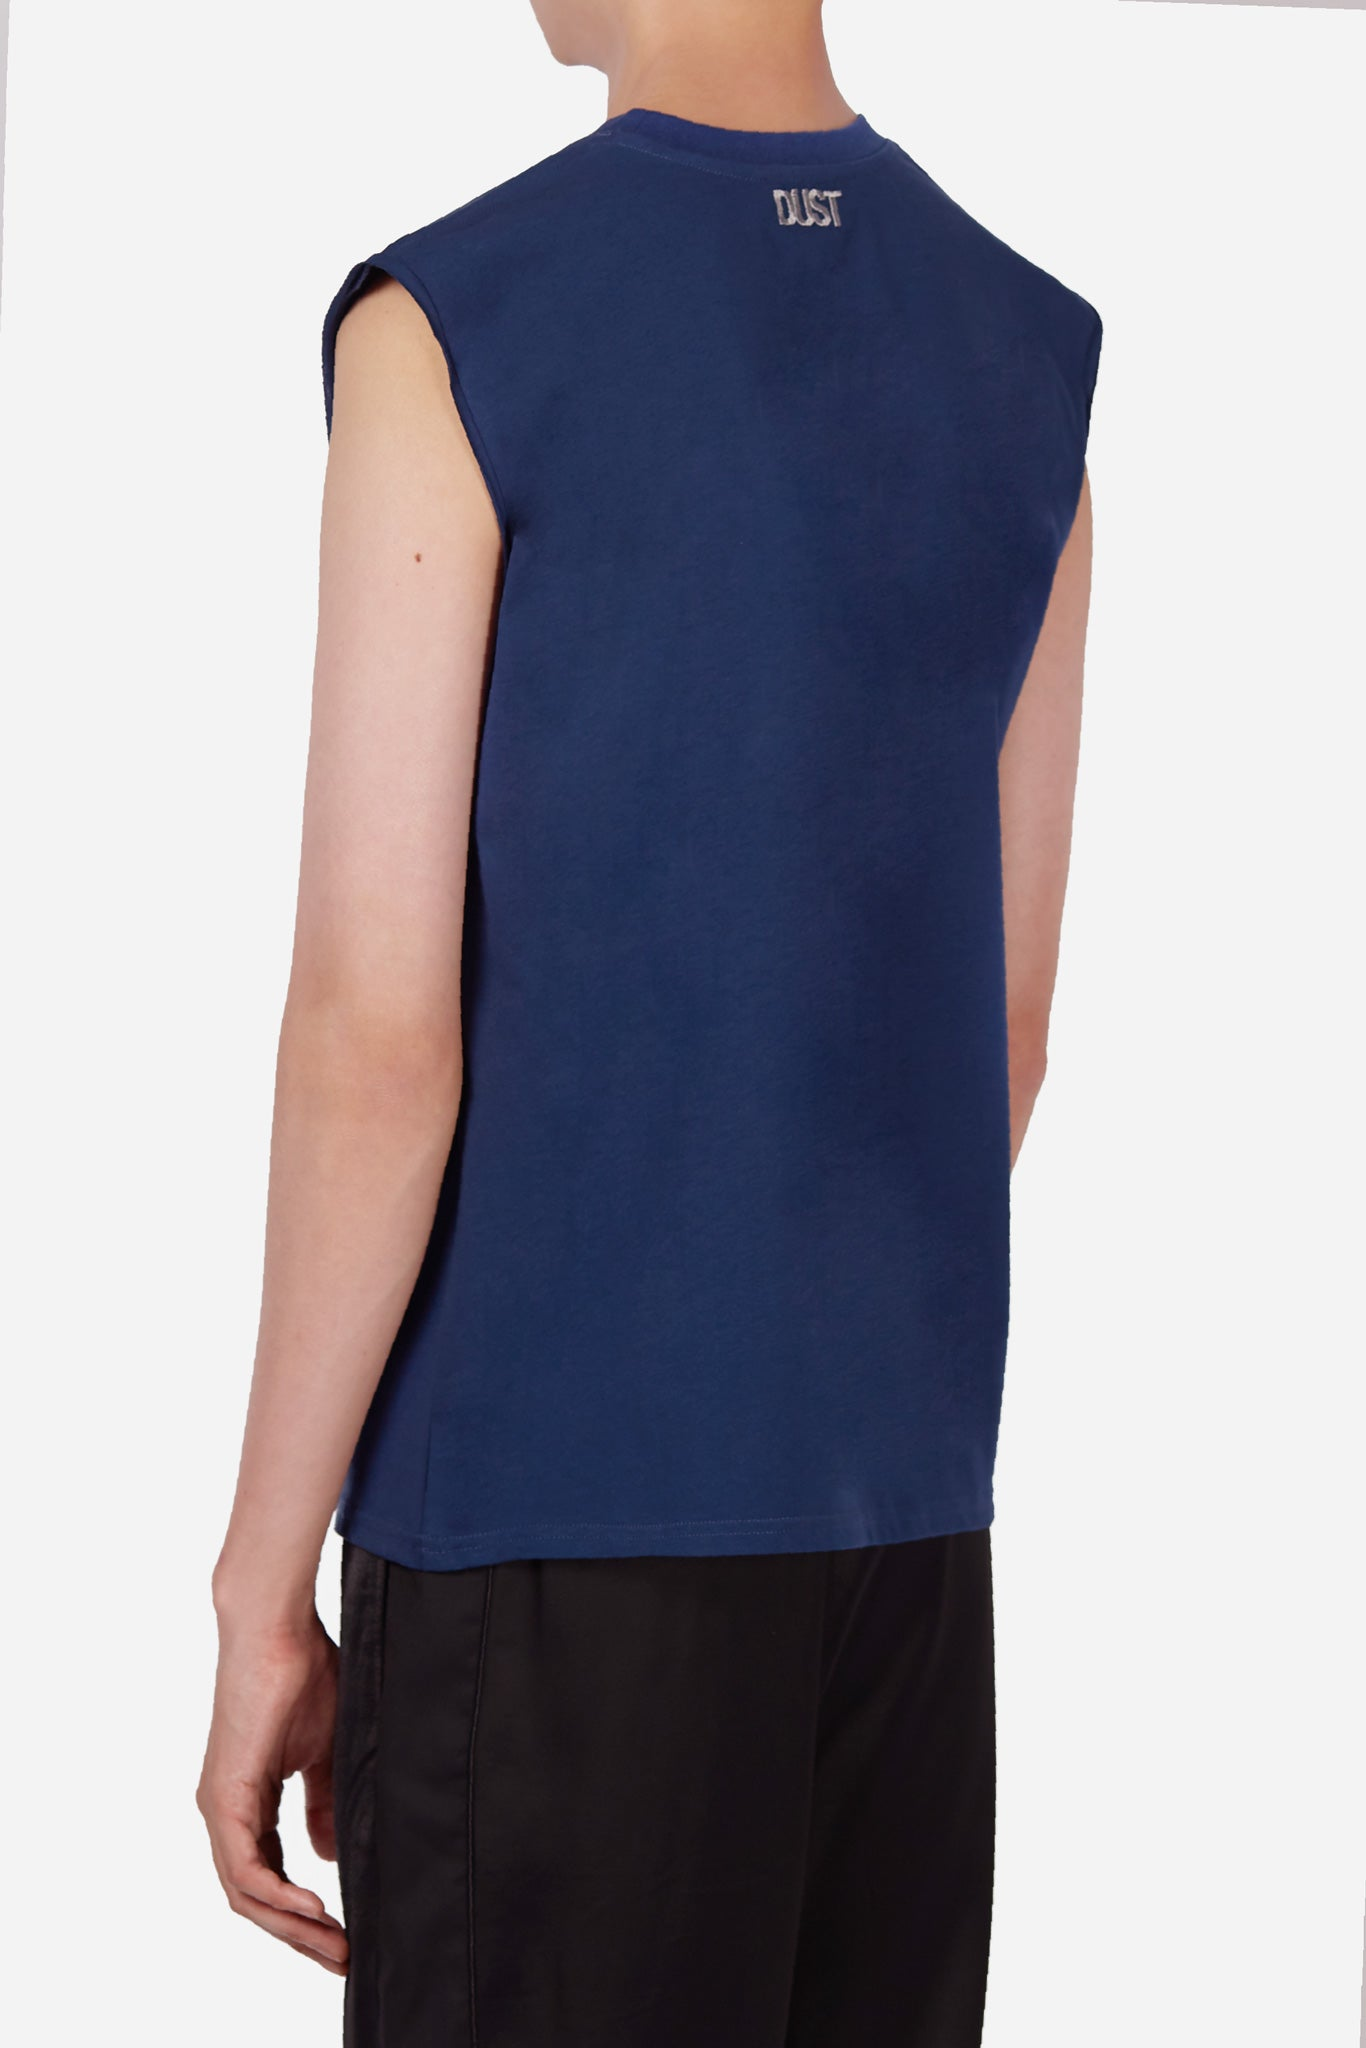 Style 1A Navy Sleeveless T-Shirt with Plastic Pocket